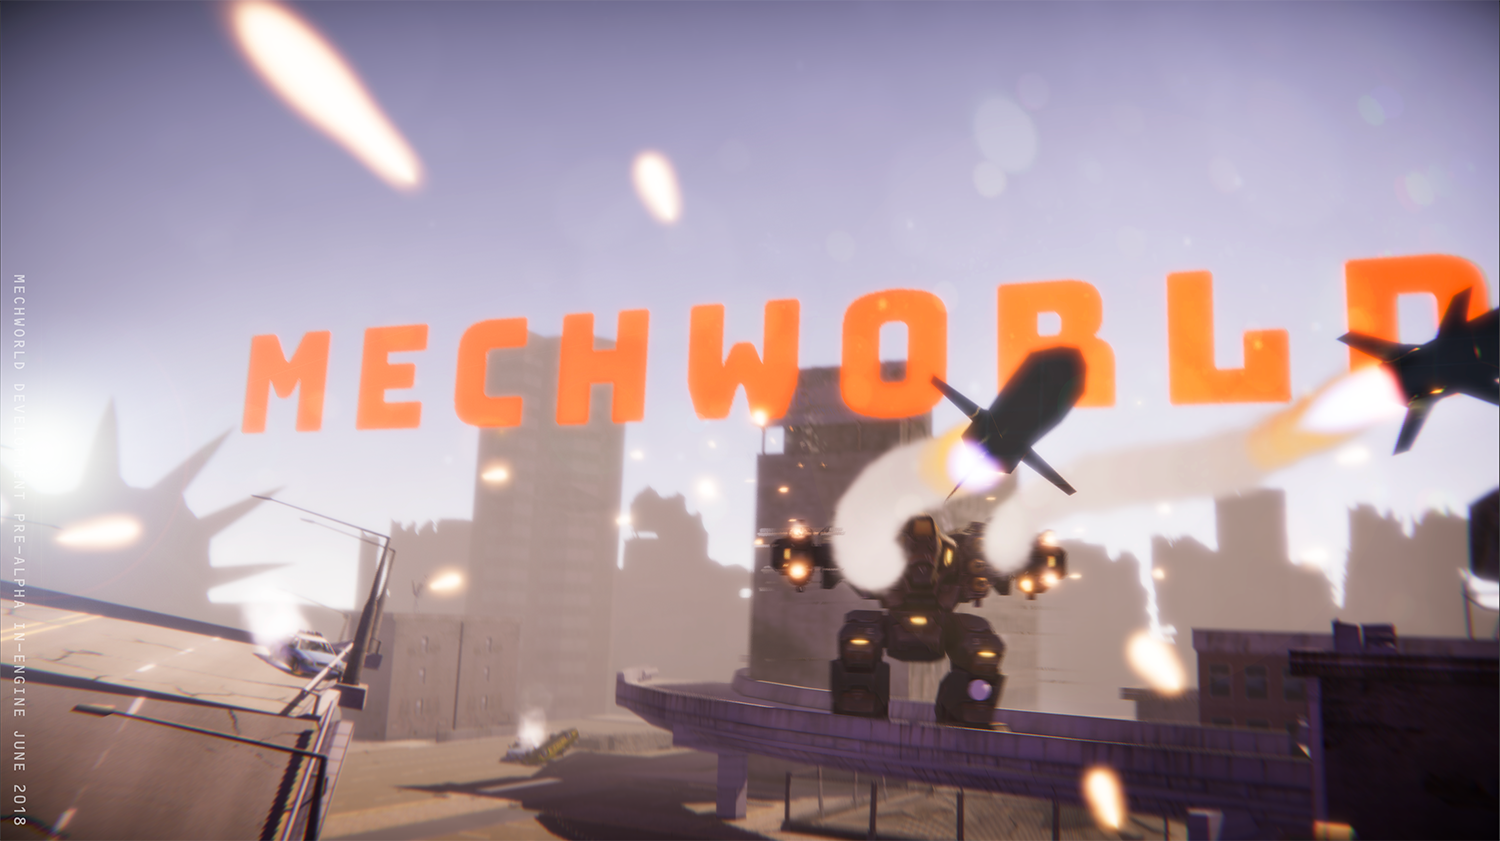 MECHWORLD